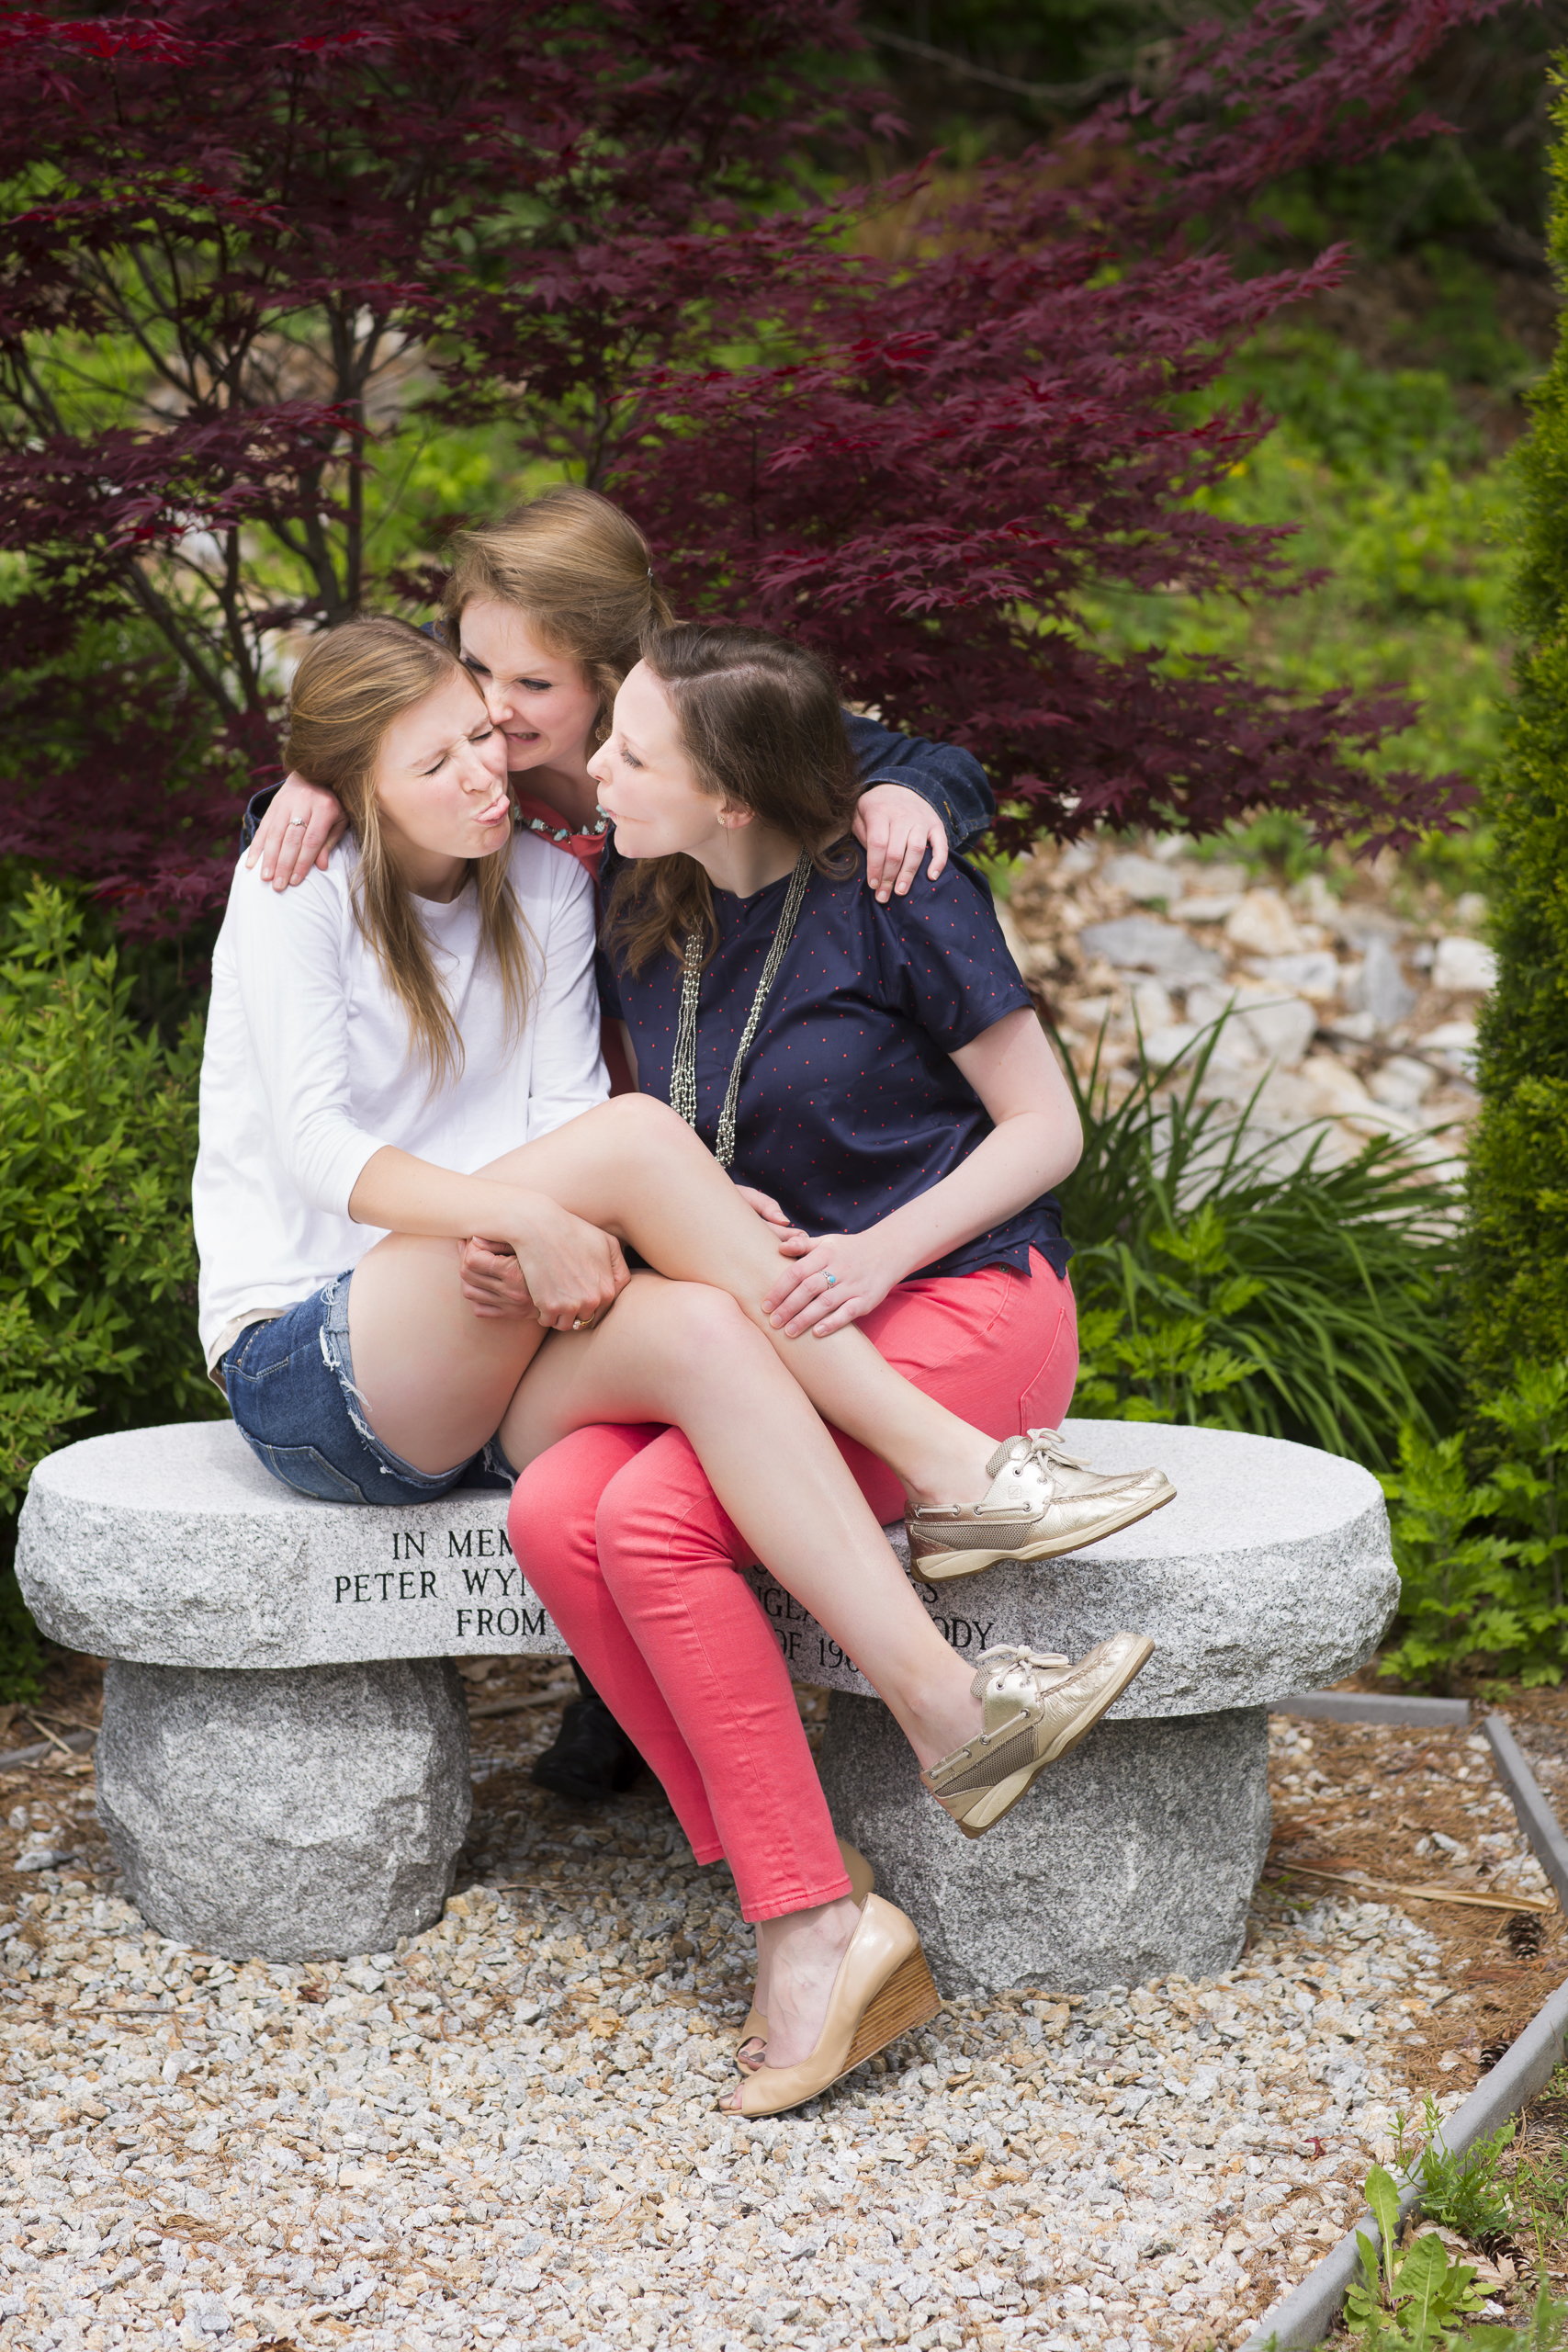 32 3 sisters family portrait outdoor session being silly on stone bench with red maple tree.jpg